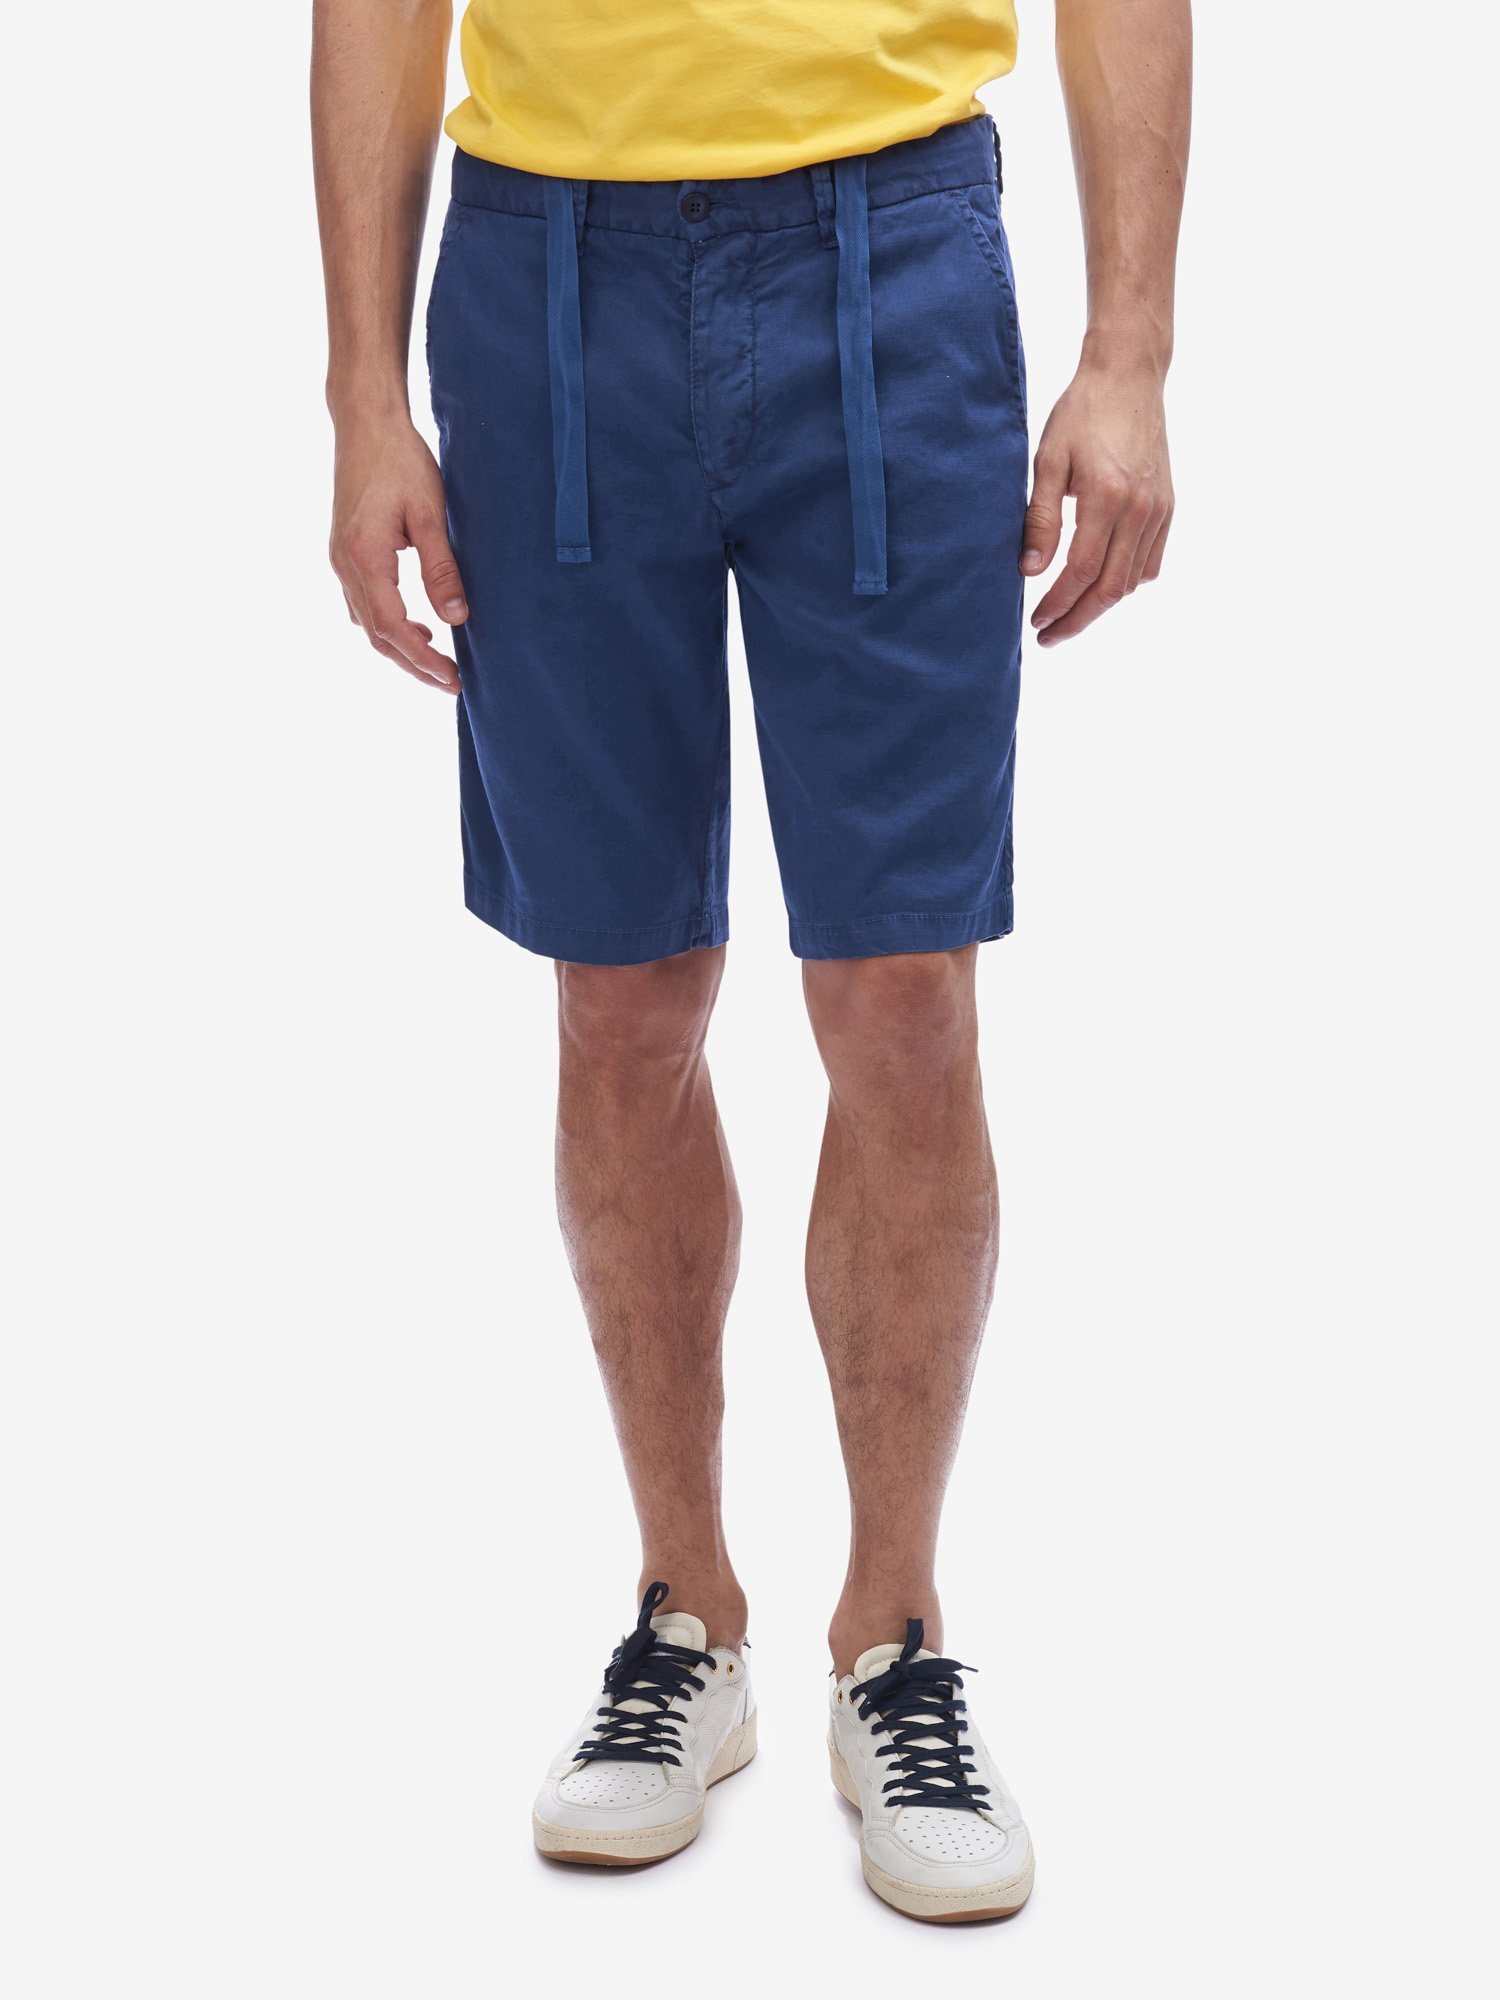 Blauer - LINEN AND COTTON BERMUDA SHORTS - Blue Sapphire - Blauer